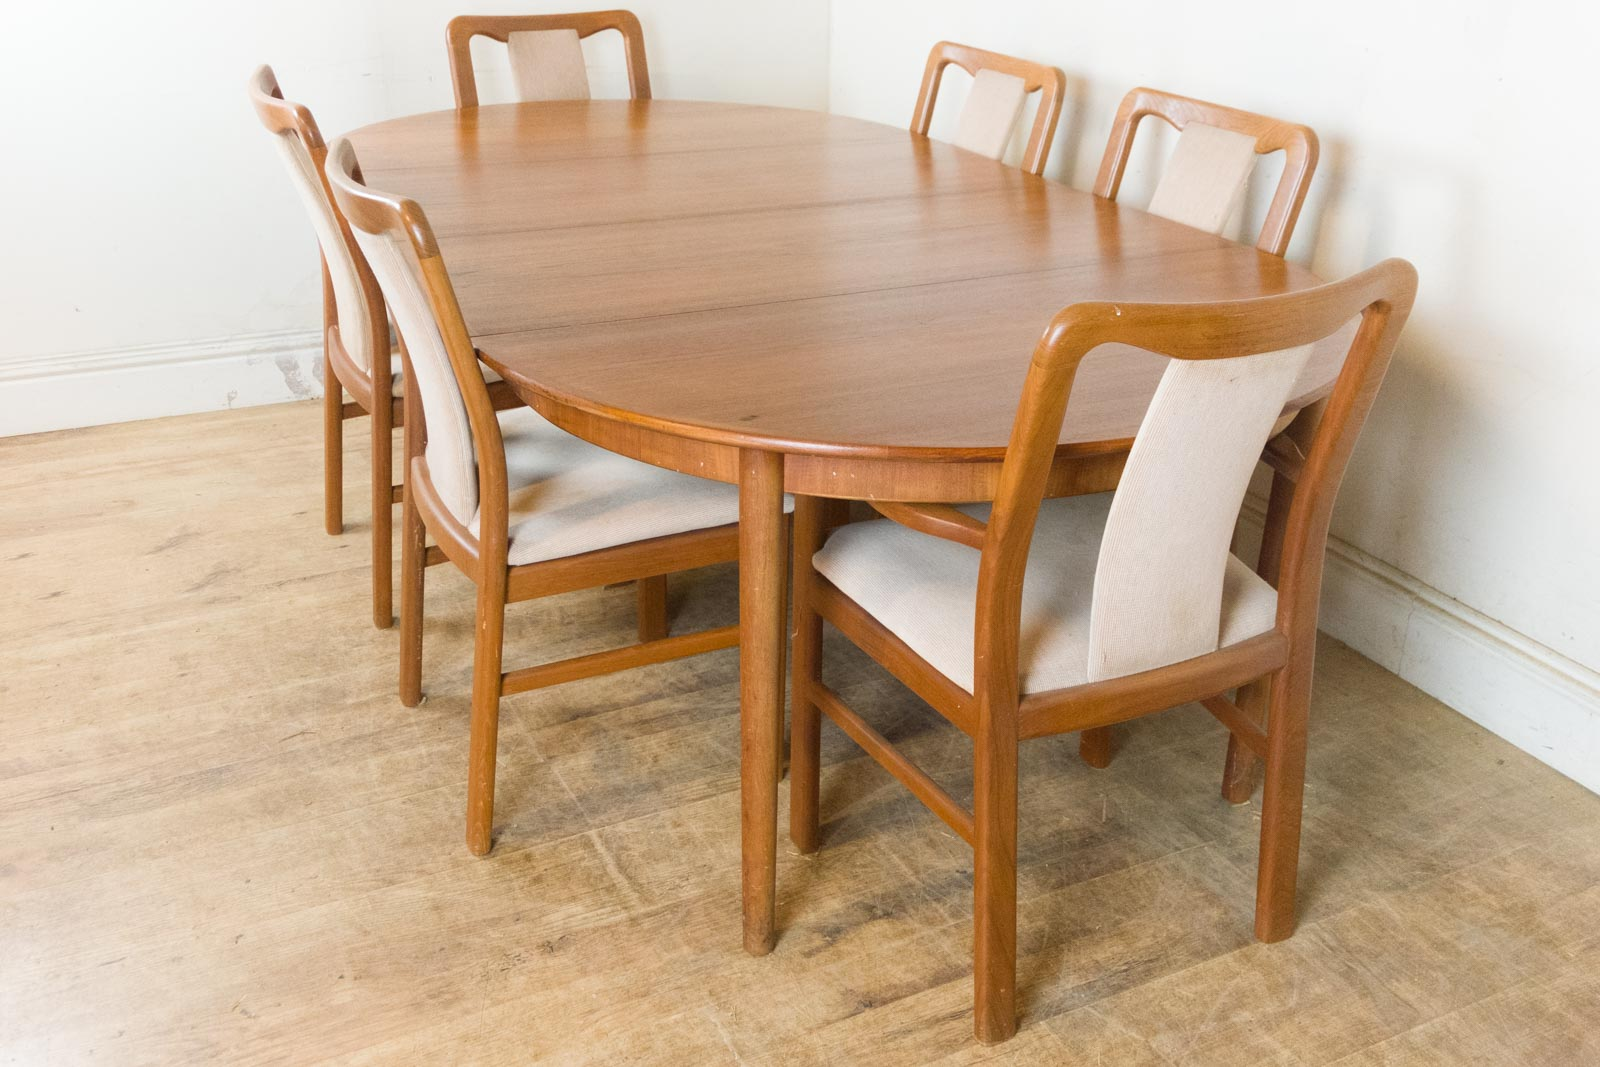 Vintage Retro Danish Extending Dining Table And 6 Chairs  : HV170602 6 from www.50han.com size 1600 x 1067 jpeg 222kB